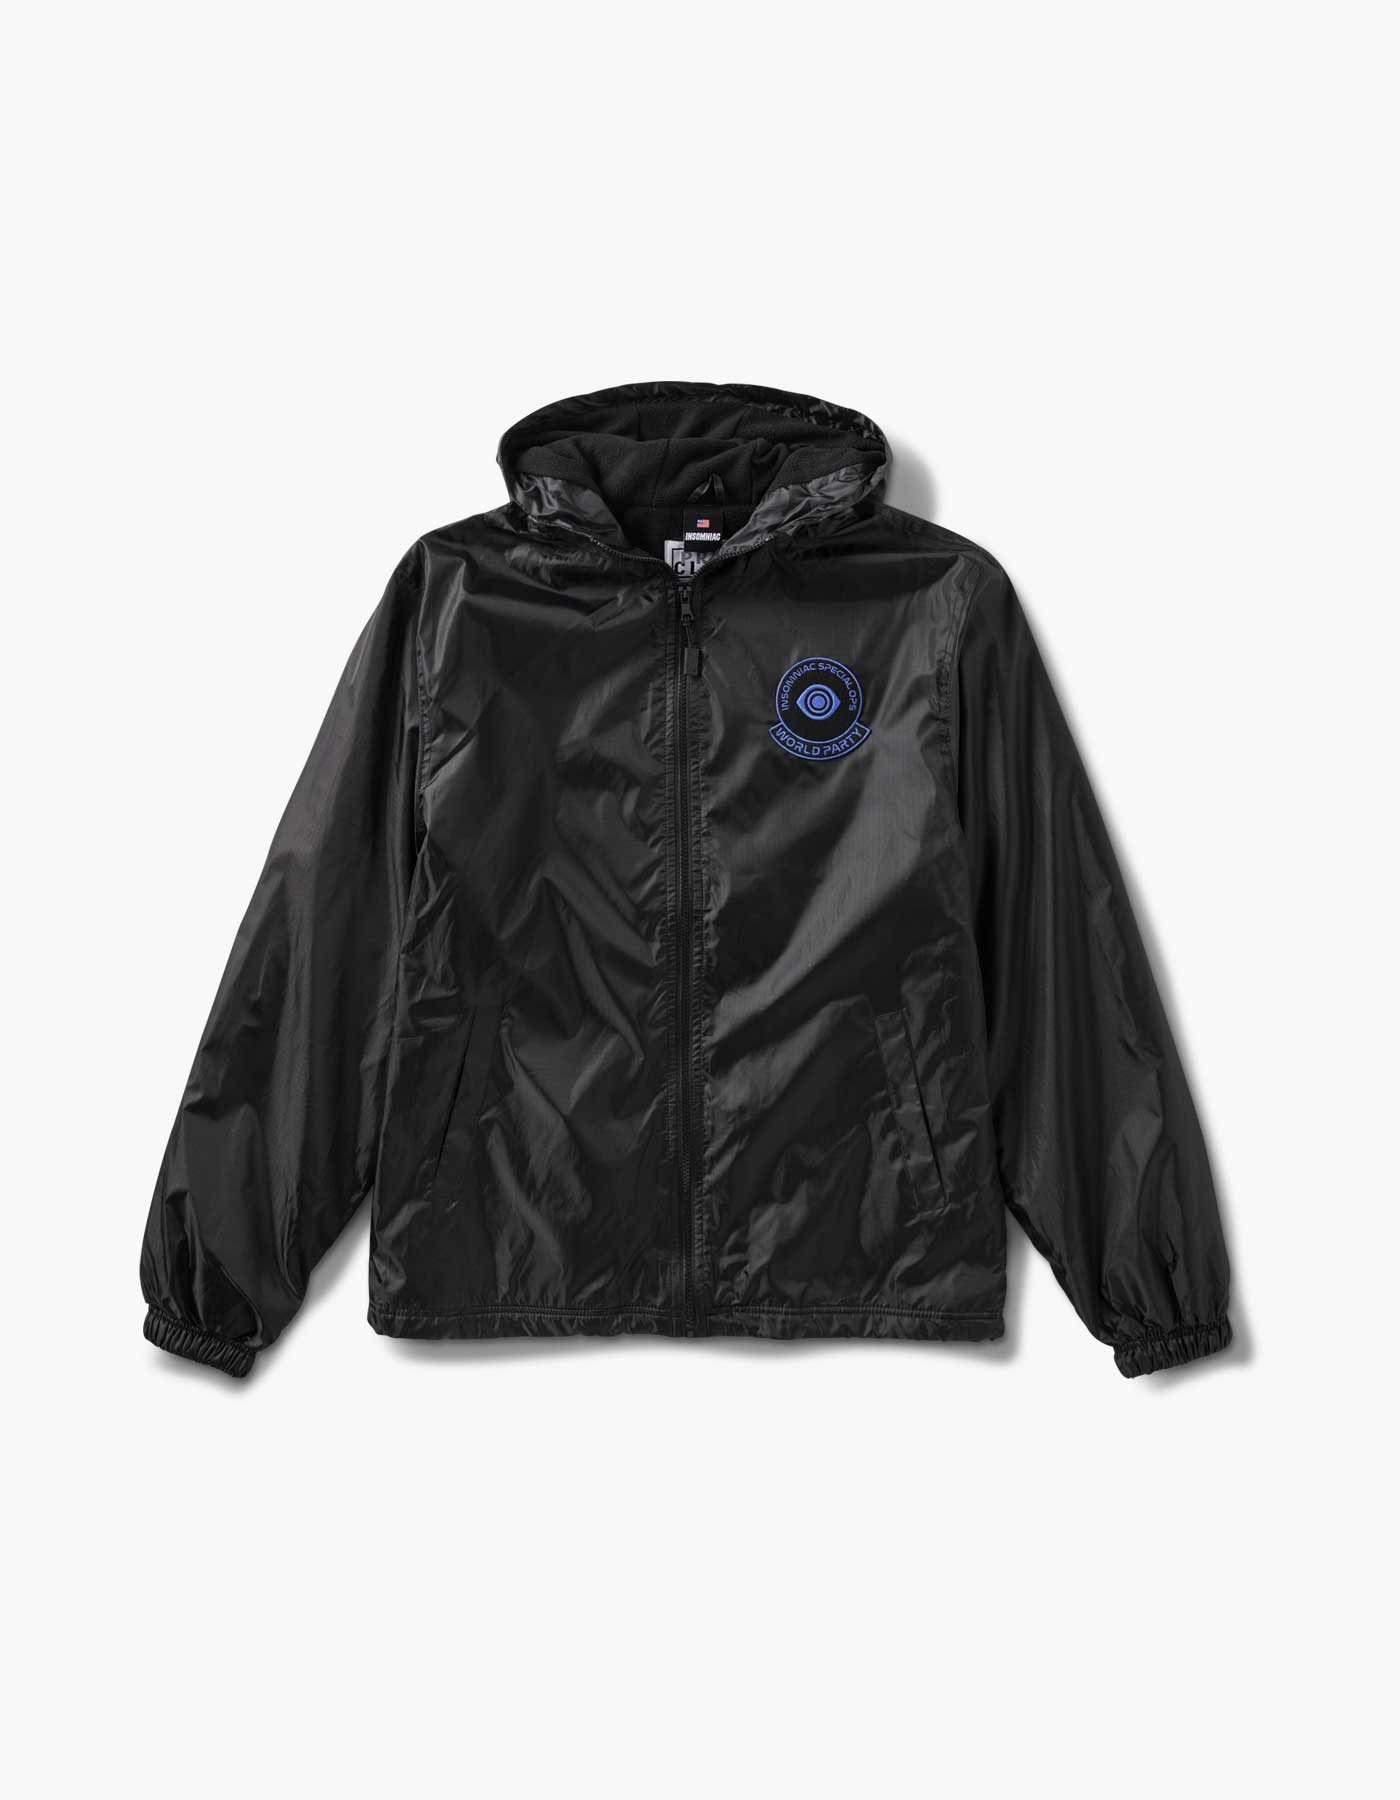 Countdown Insomniac World Party Special Ops Jacket V.2